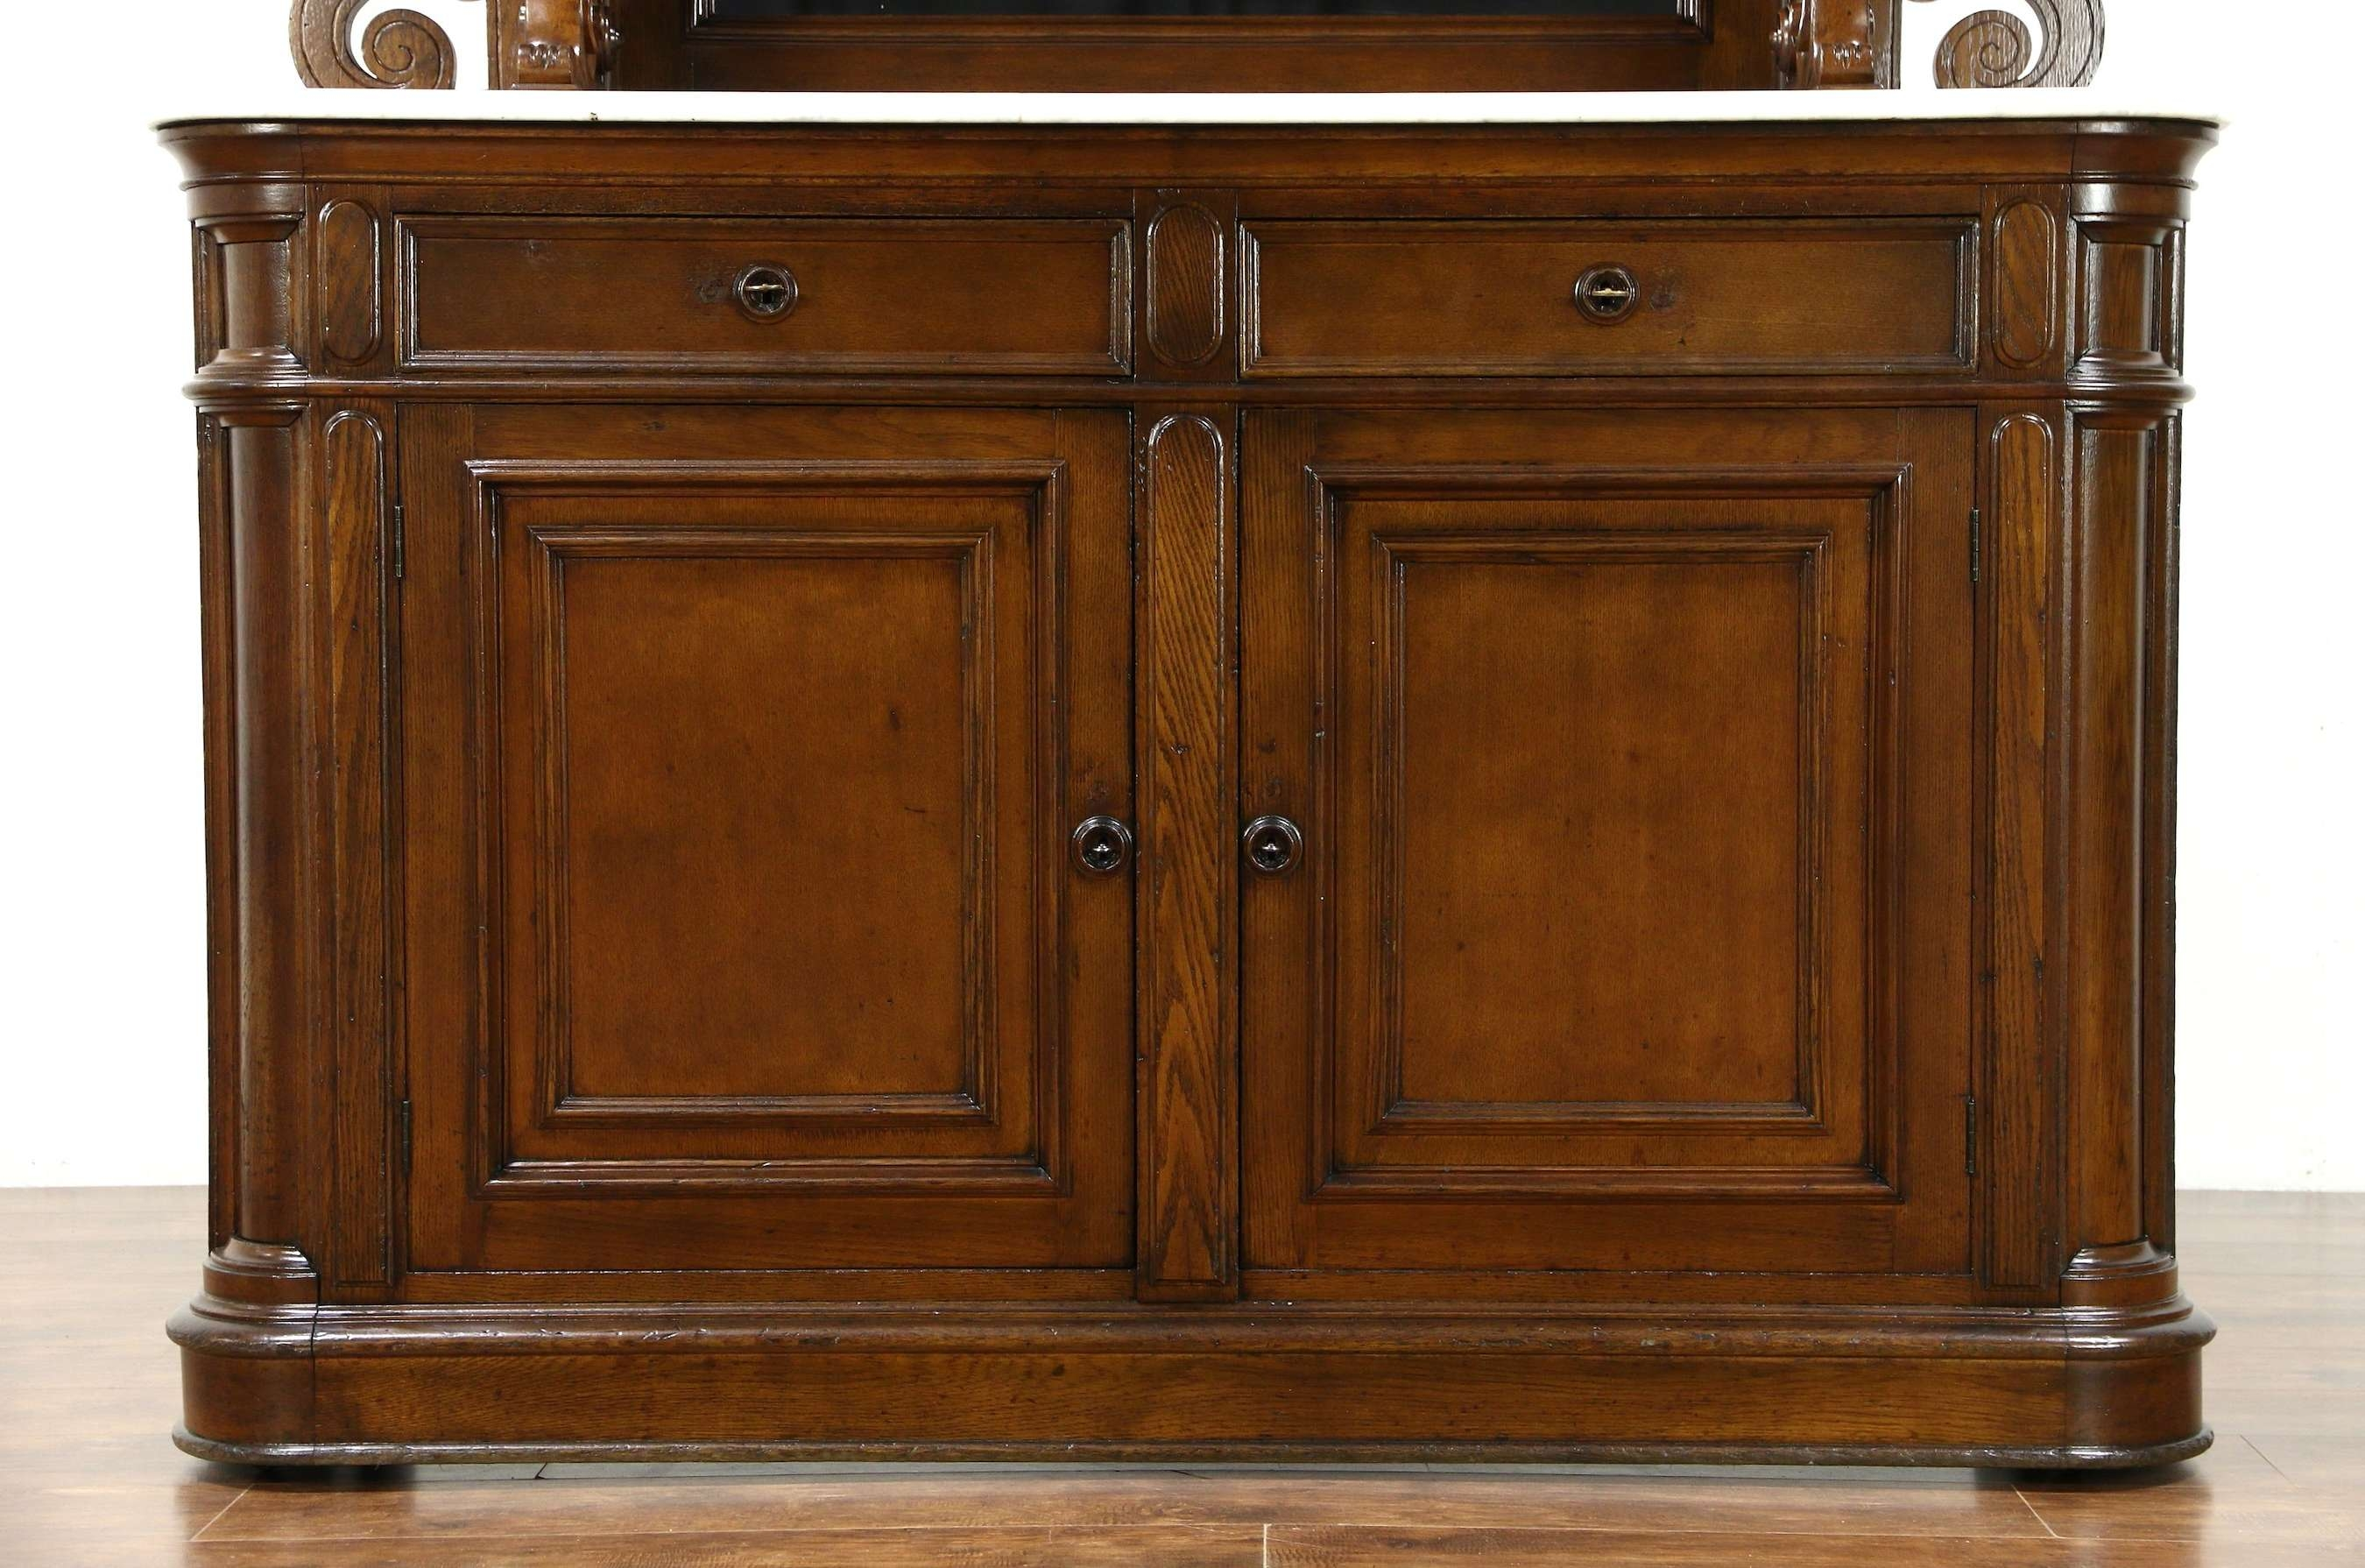 Victorian Grape Carved Oak Antique 1870 Sideboard, Server Or Within Marble Top Sideboards (View 18 of 20)